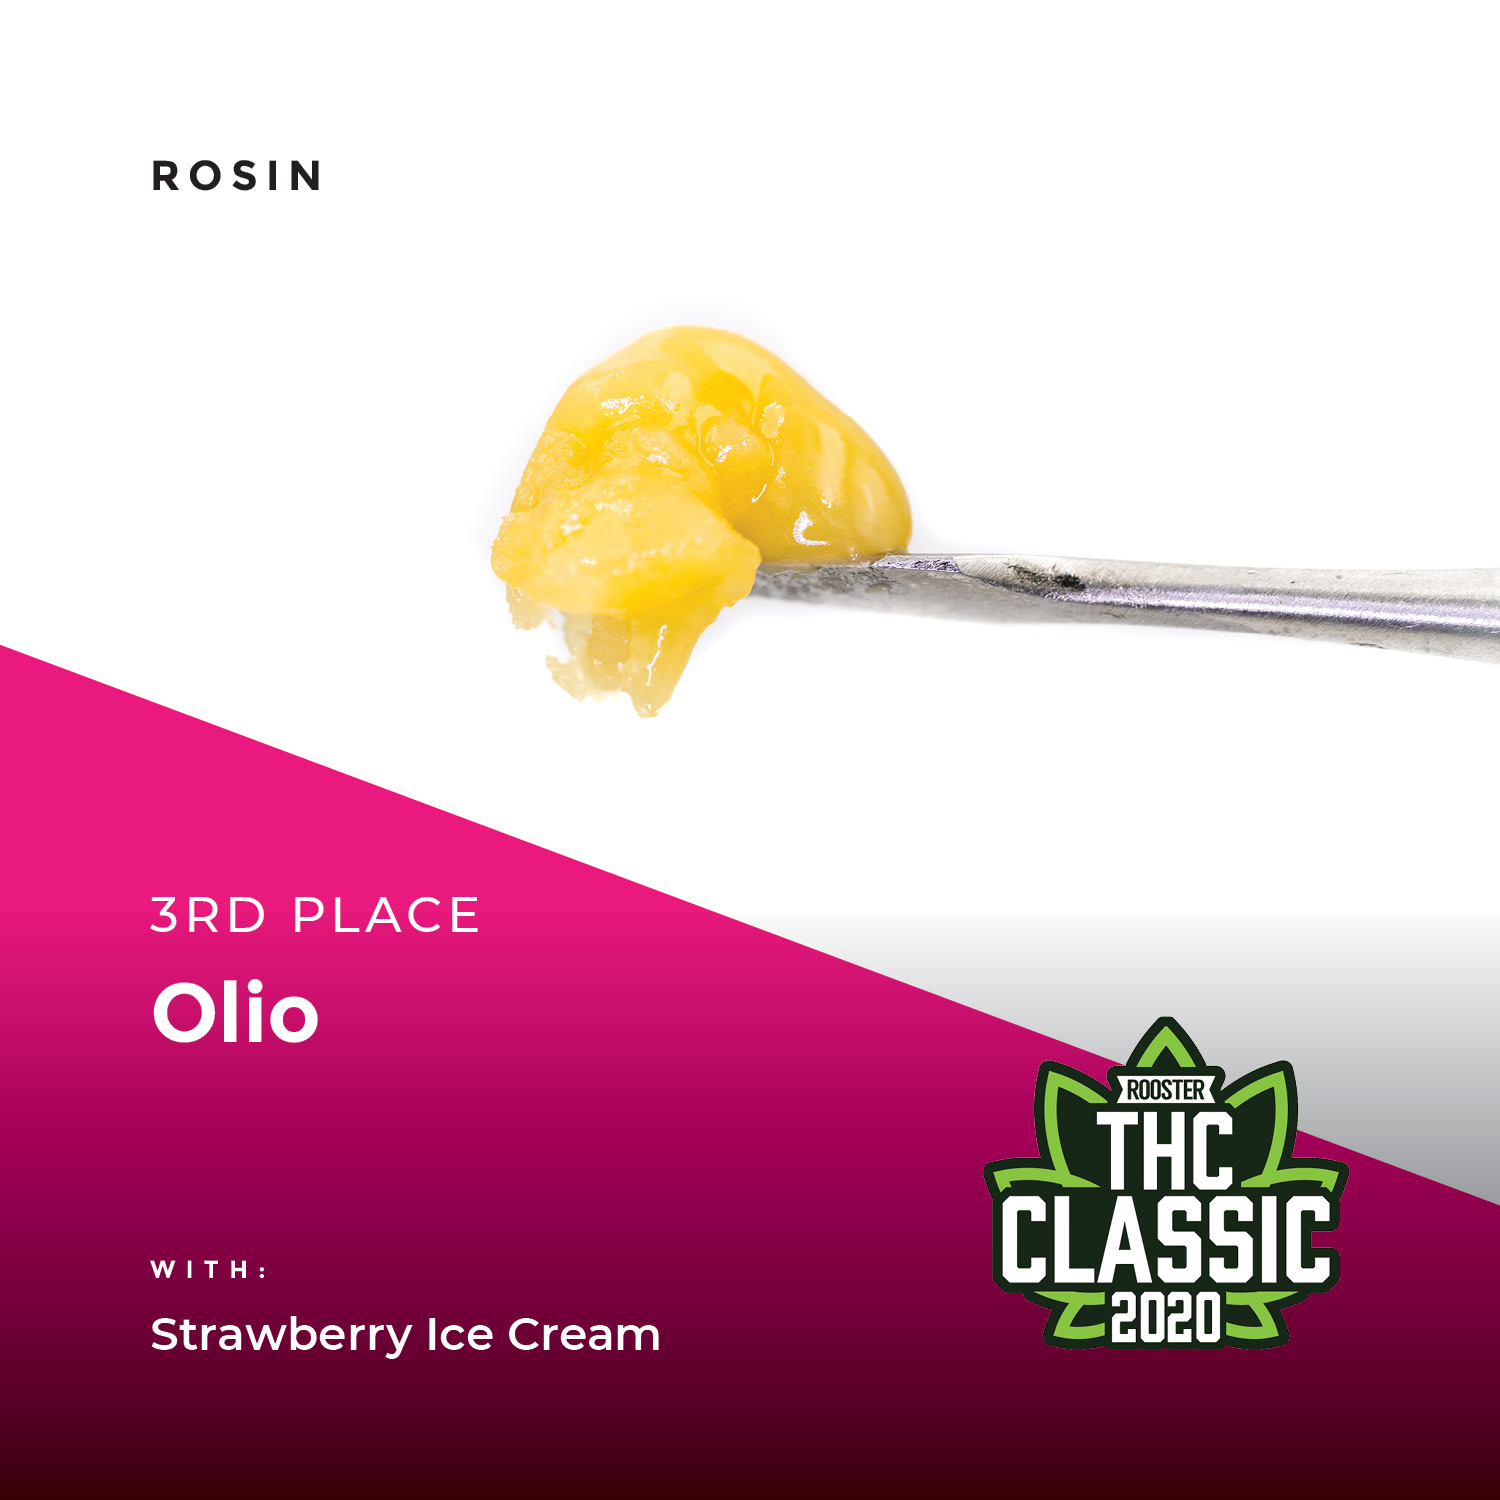 Best Colorado Cannabis Products: Rosin